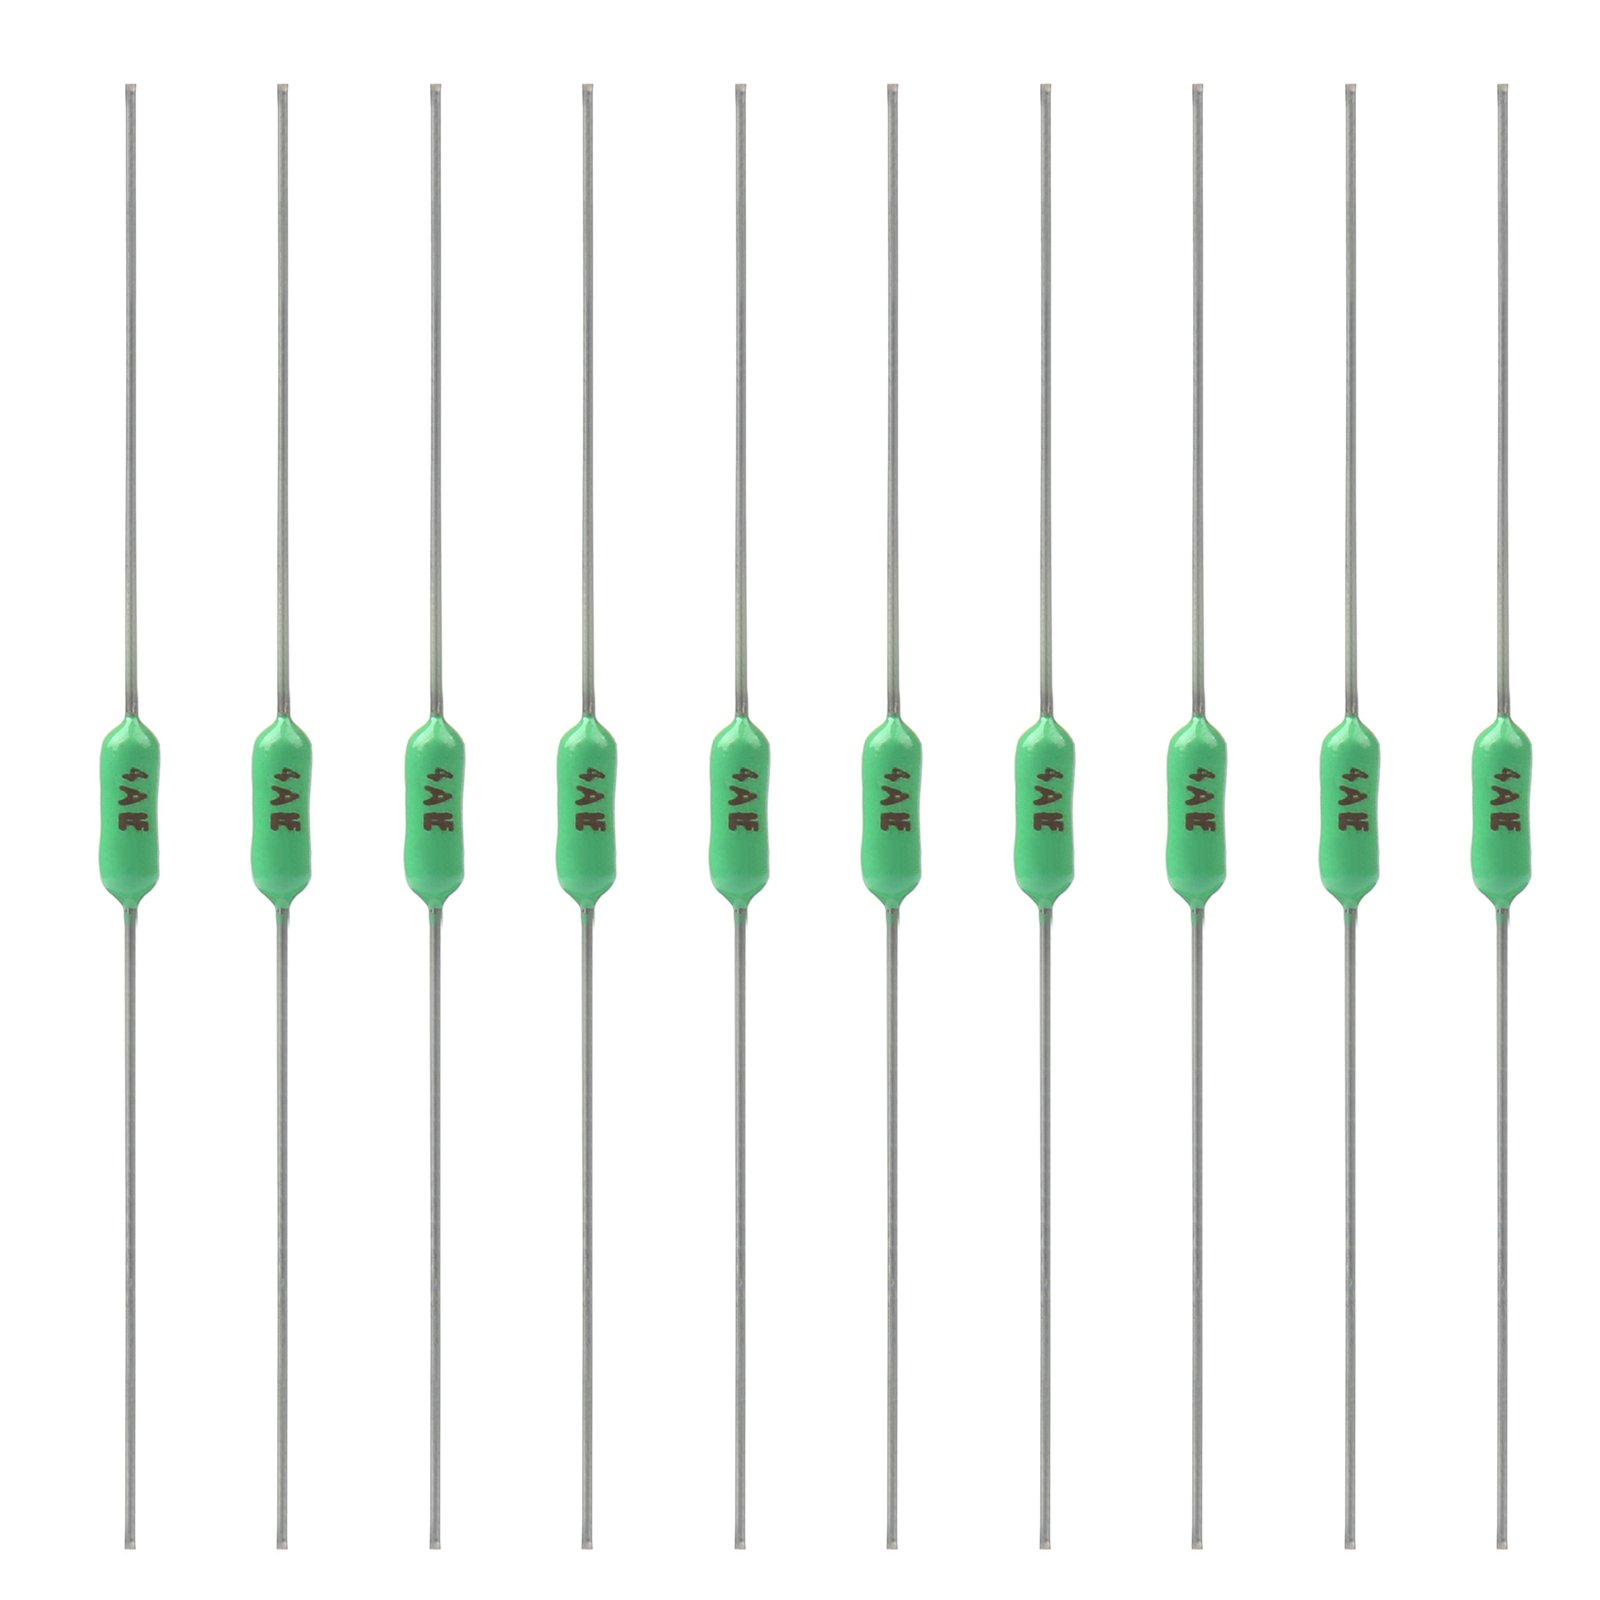 Areyourshop 10Pcs Green Ceramic Resistor Fuse Axial Lead Very Fast Acting Fuse 2.4x7mm 4A